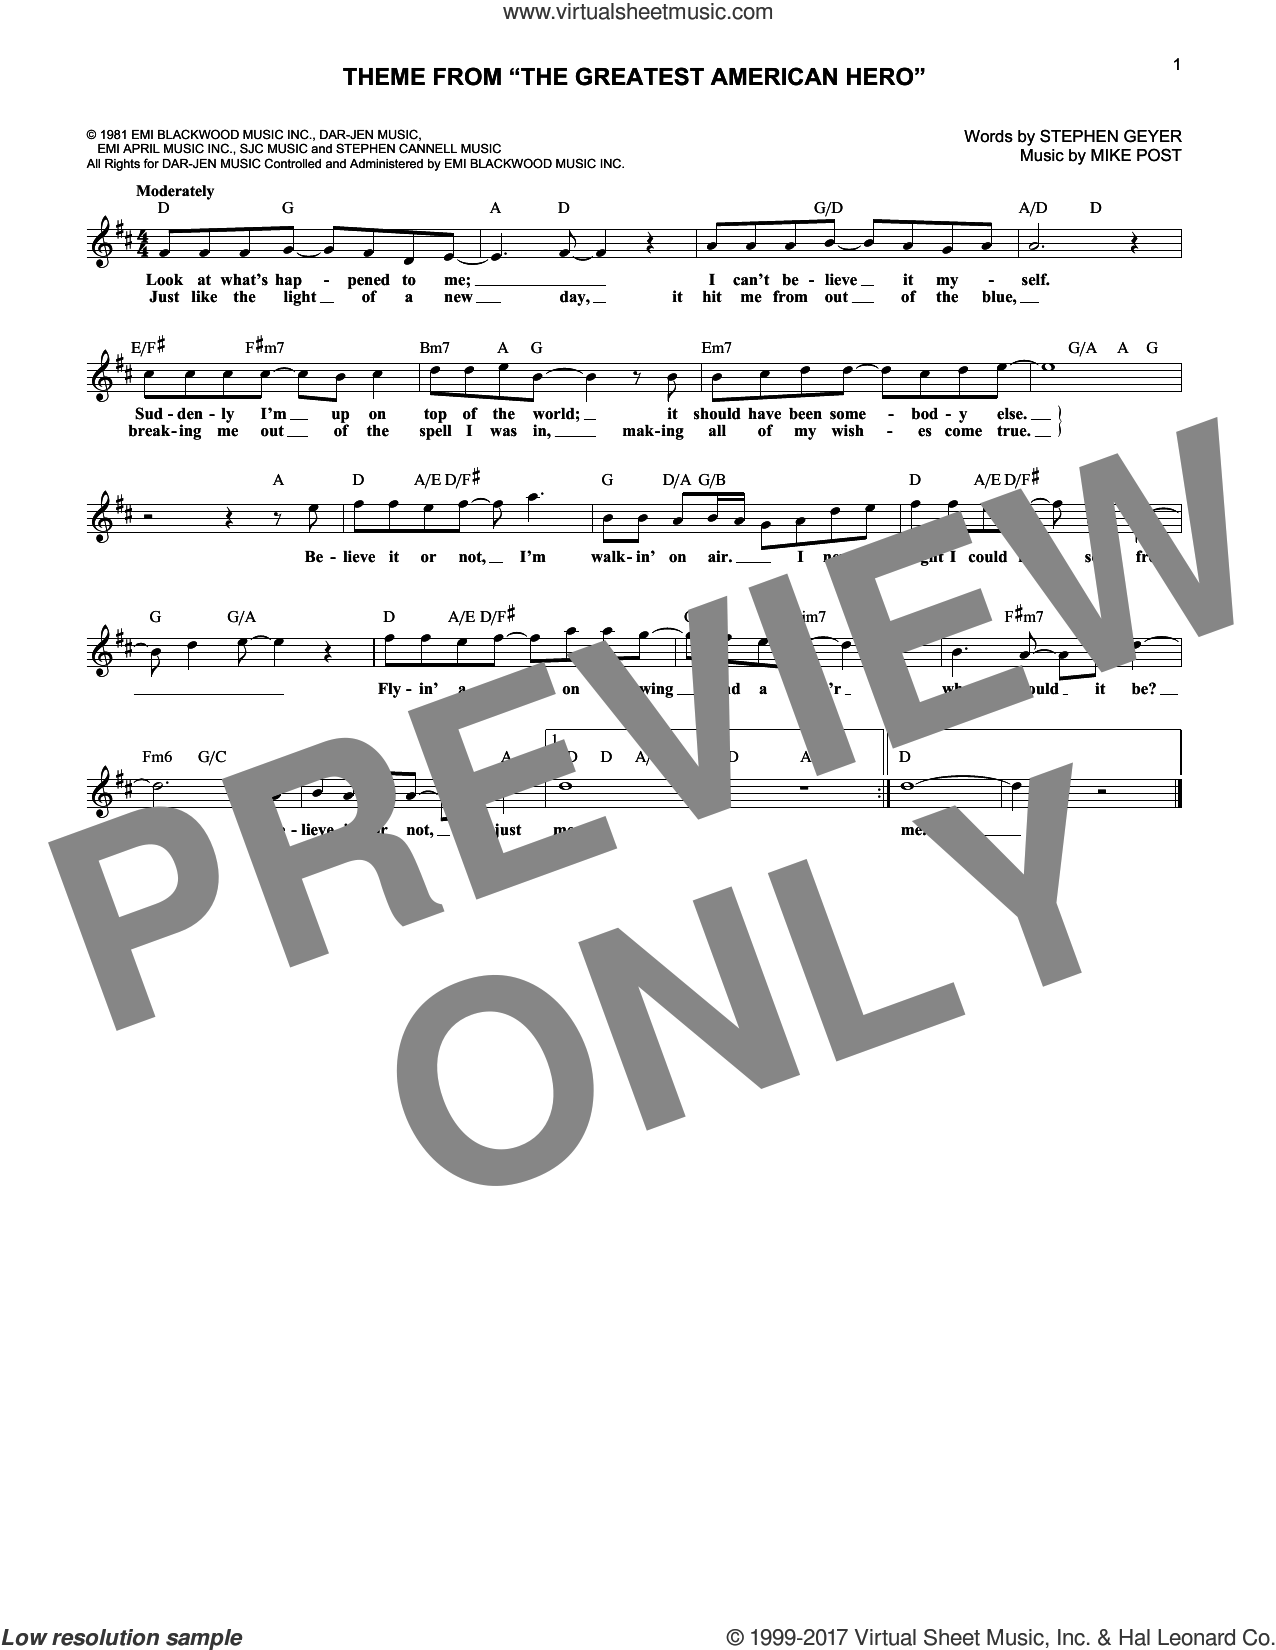 Believe It Or Not (Theme From 'The Greatest American Hero') sheet music for voice and other instruments (fake book) by Joey Scarbury, Mike Post and Steve Geyer, intermediate skill level